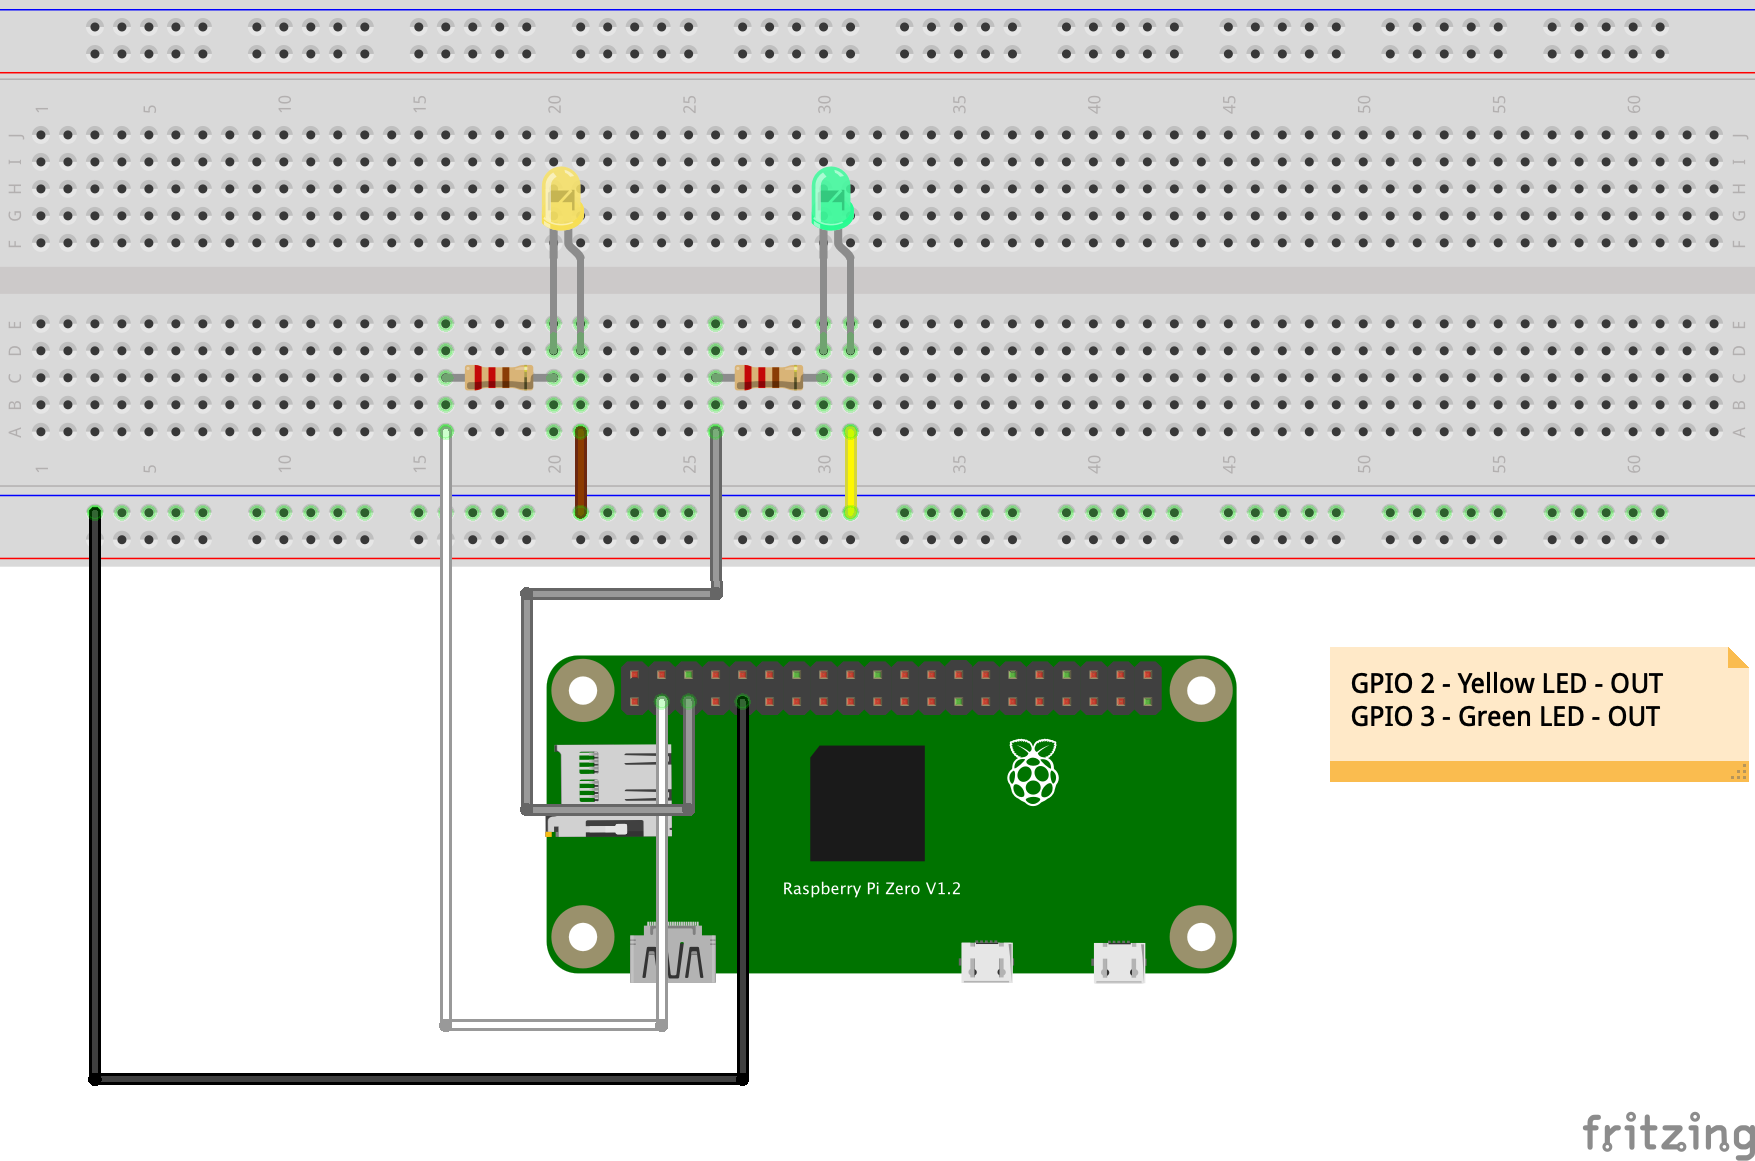 A second LED connected to a Raspberry Pi